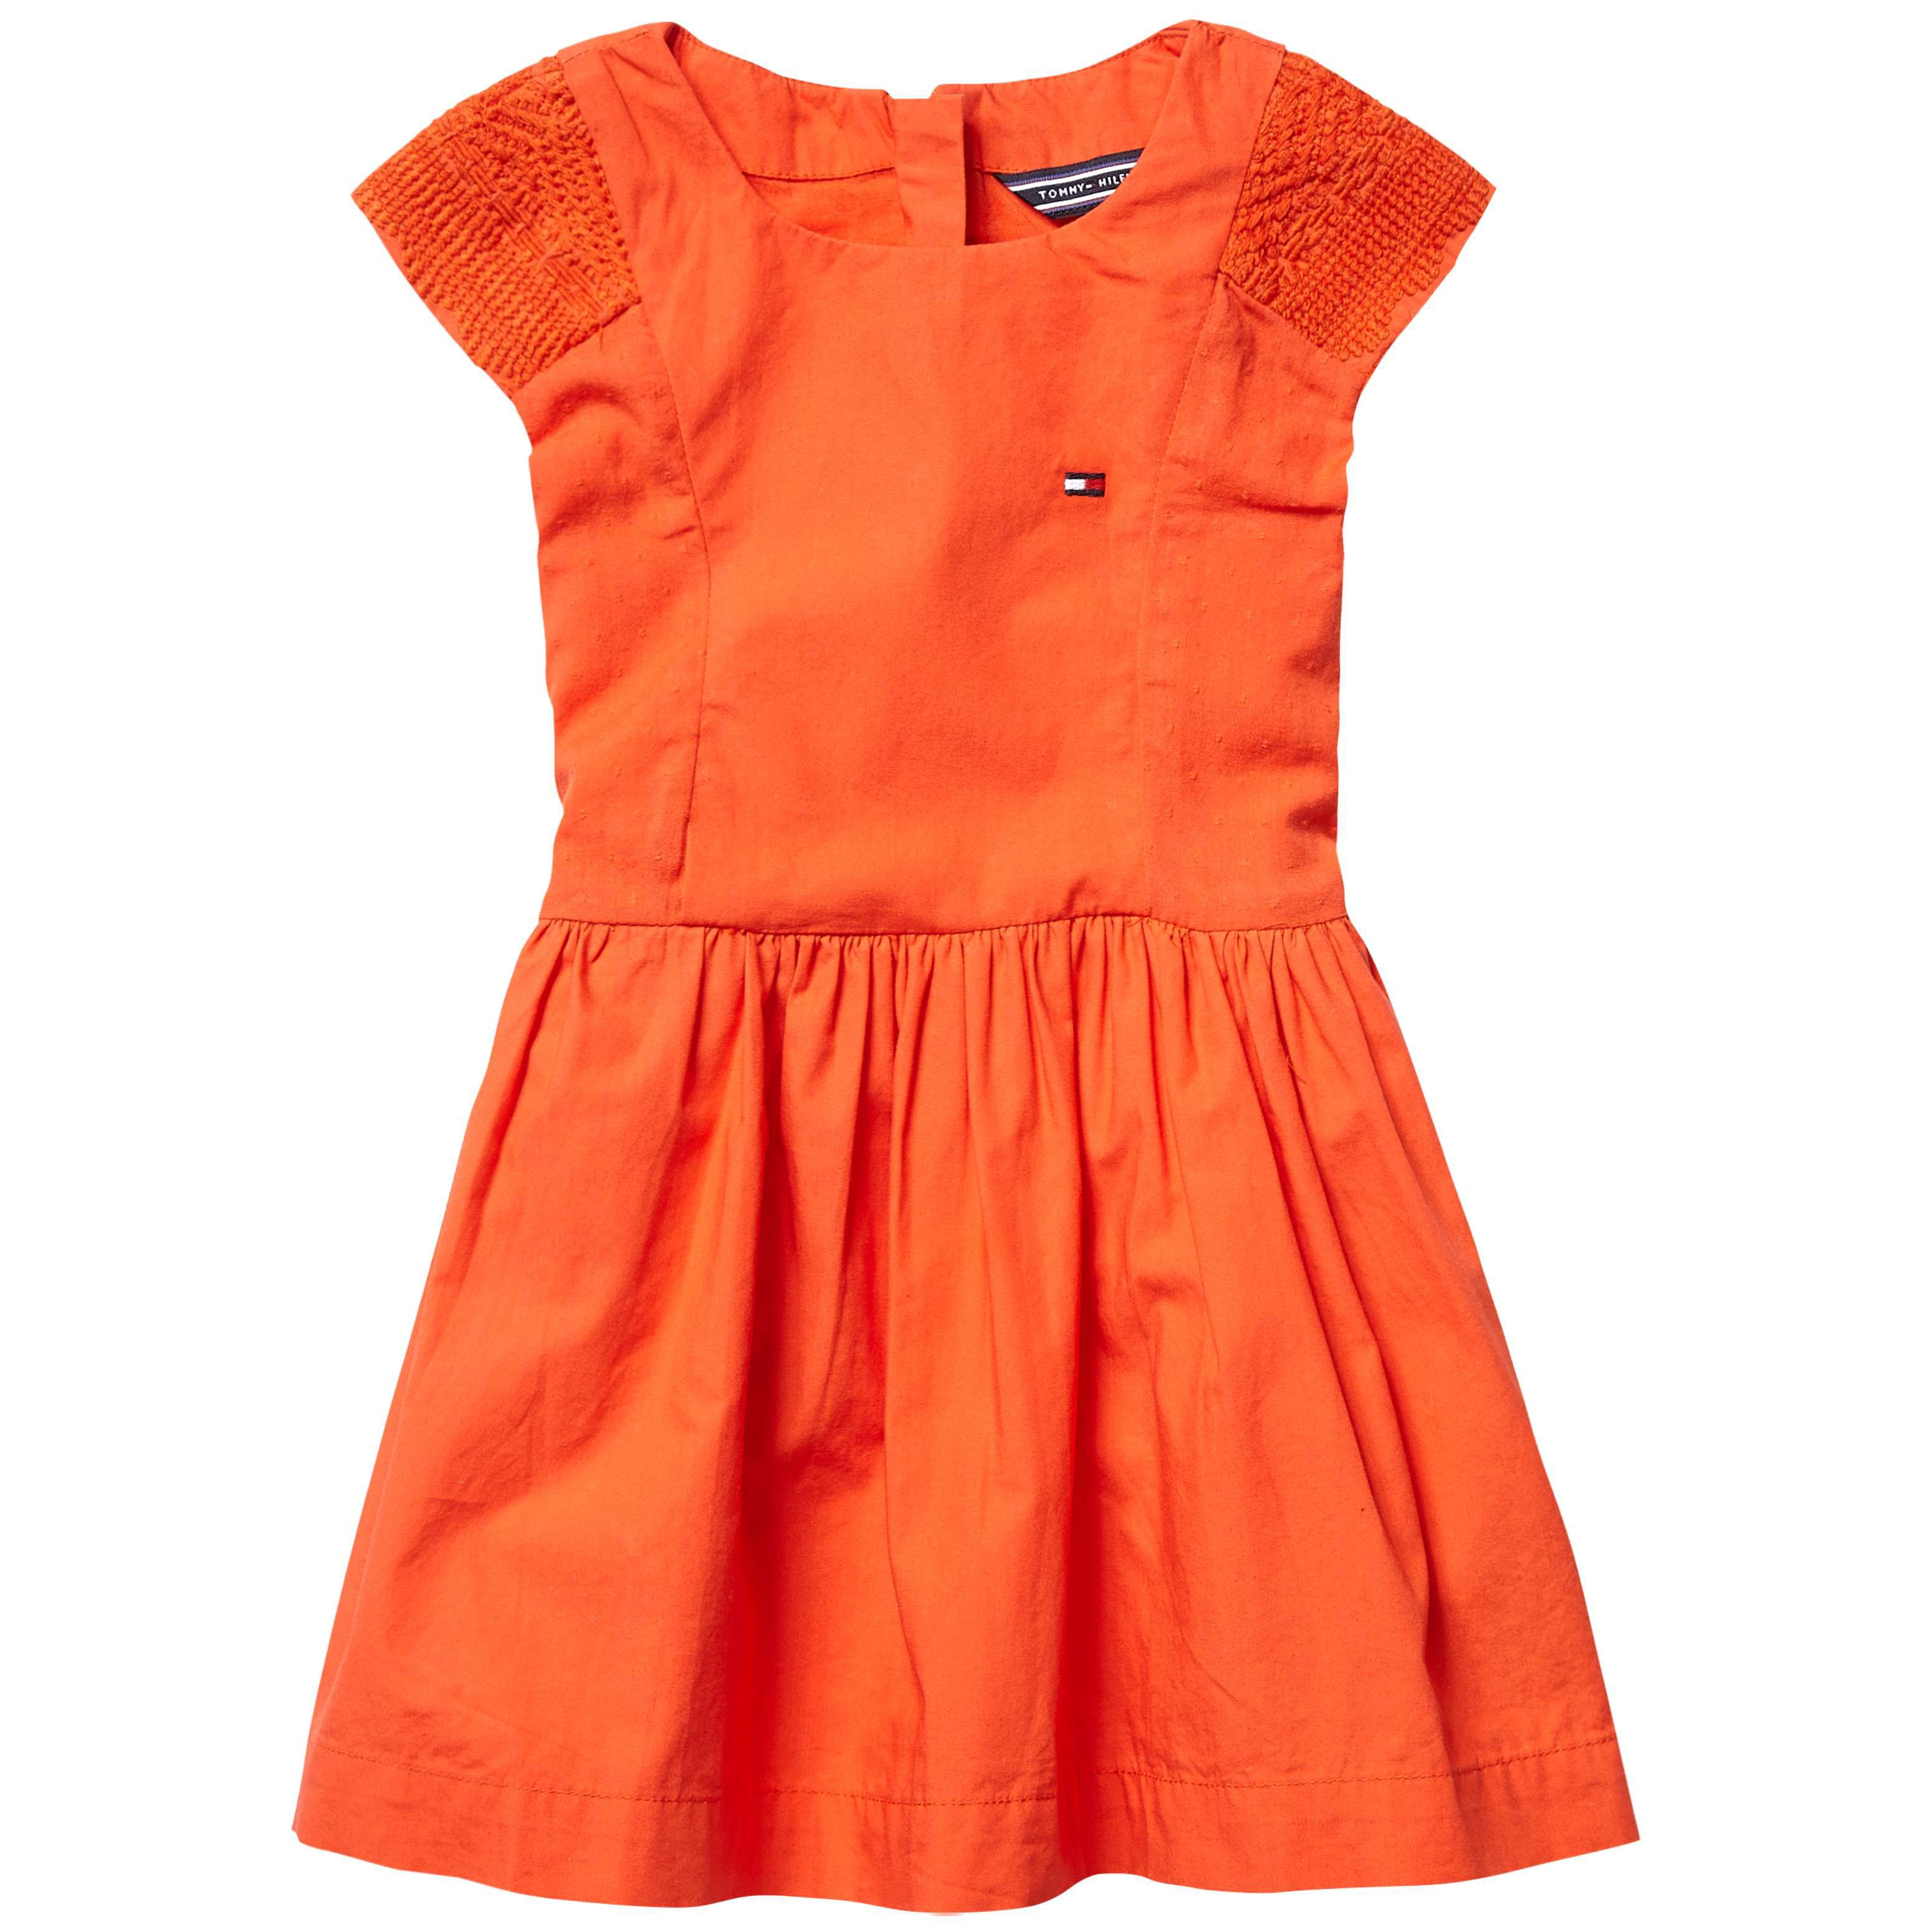 Girls mini dress